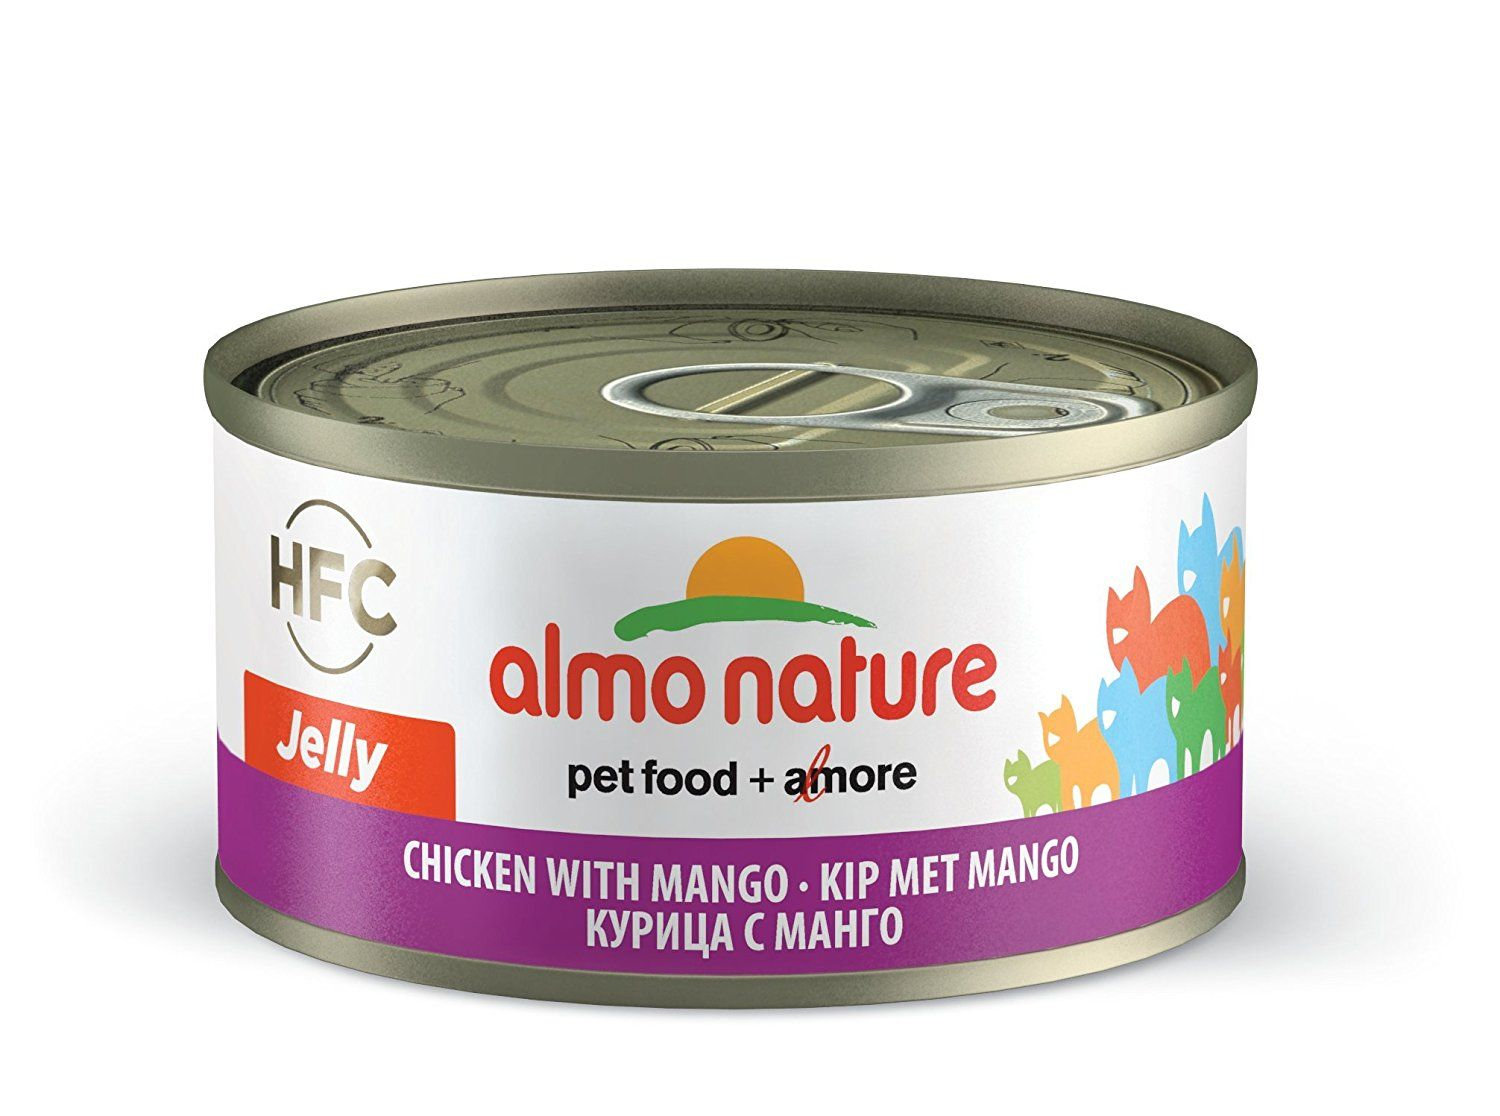 Almo nature hfc jelly with chicken and mango pack of 24 x